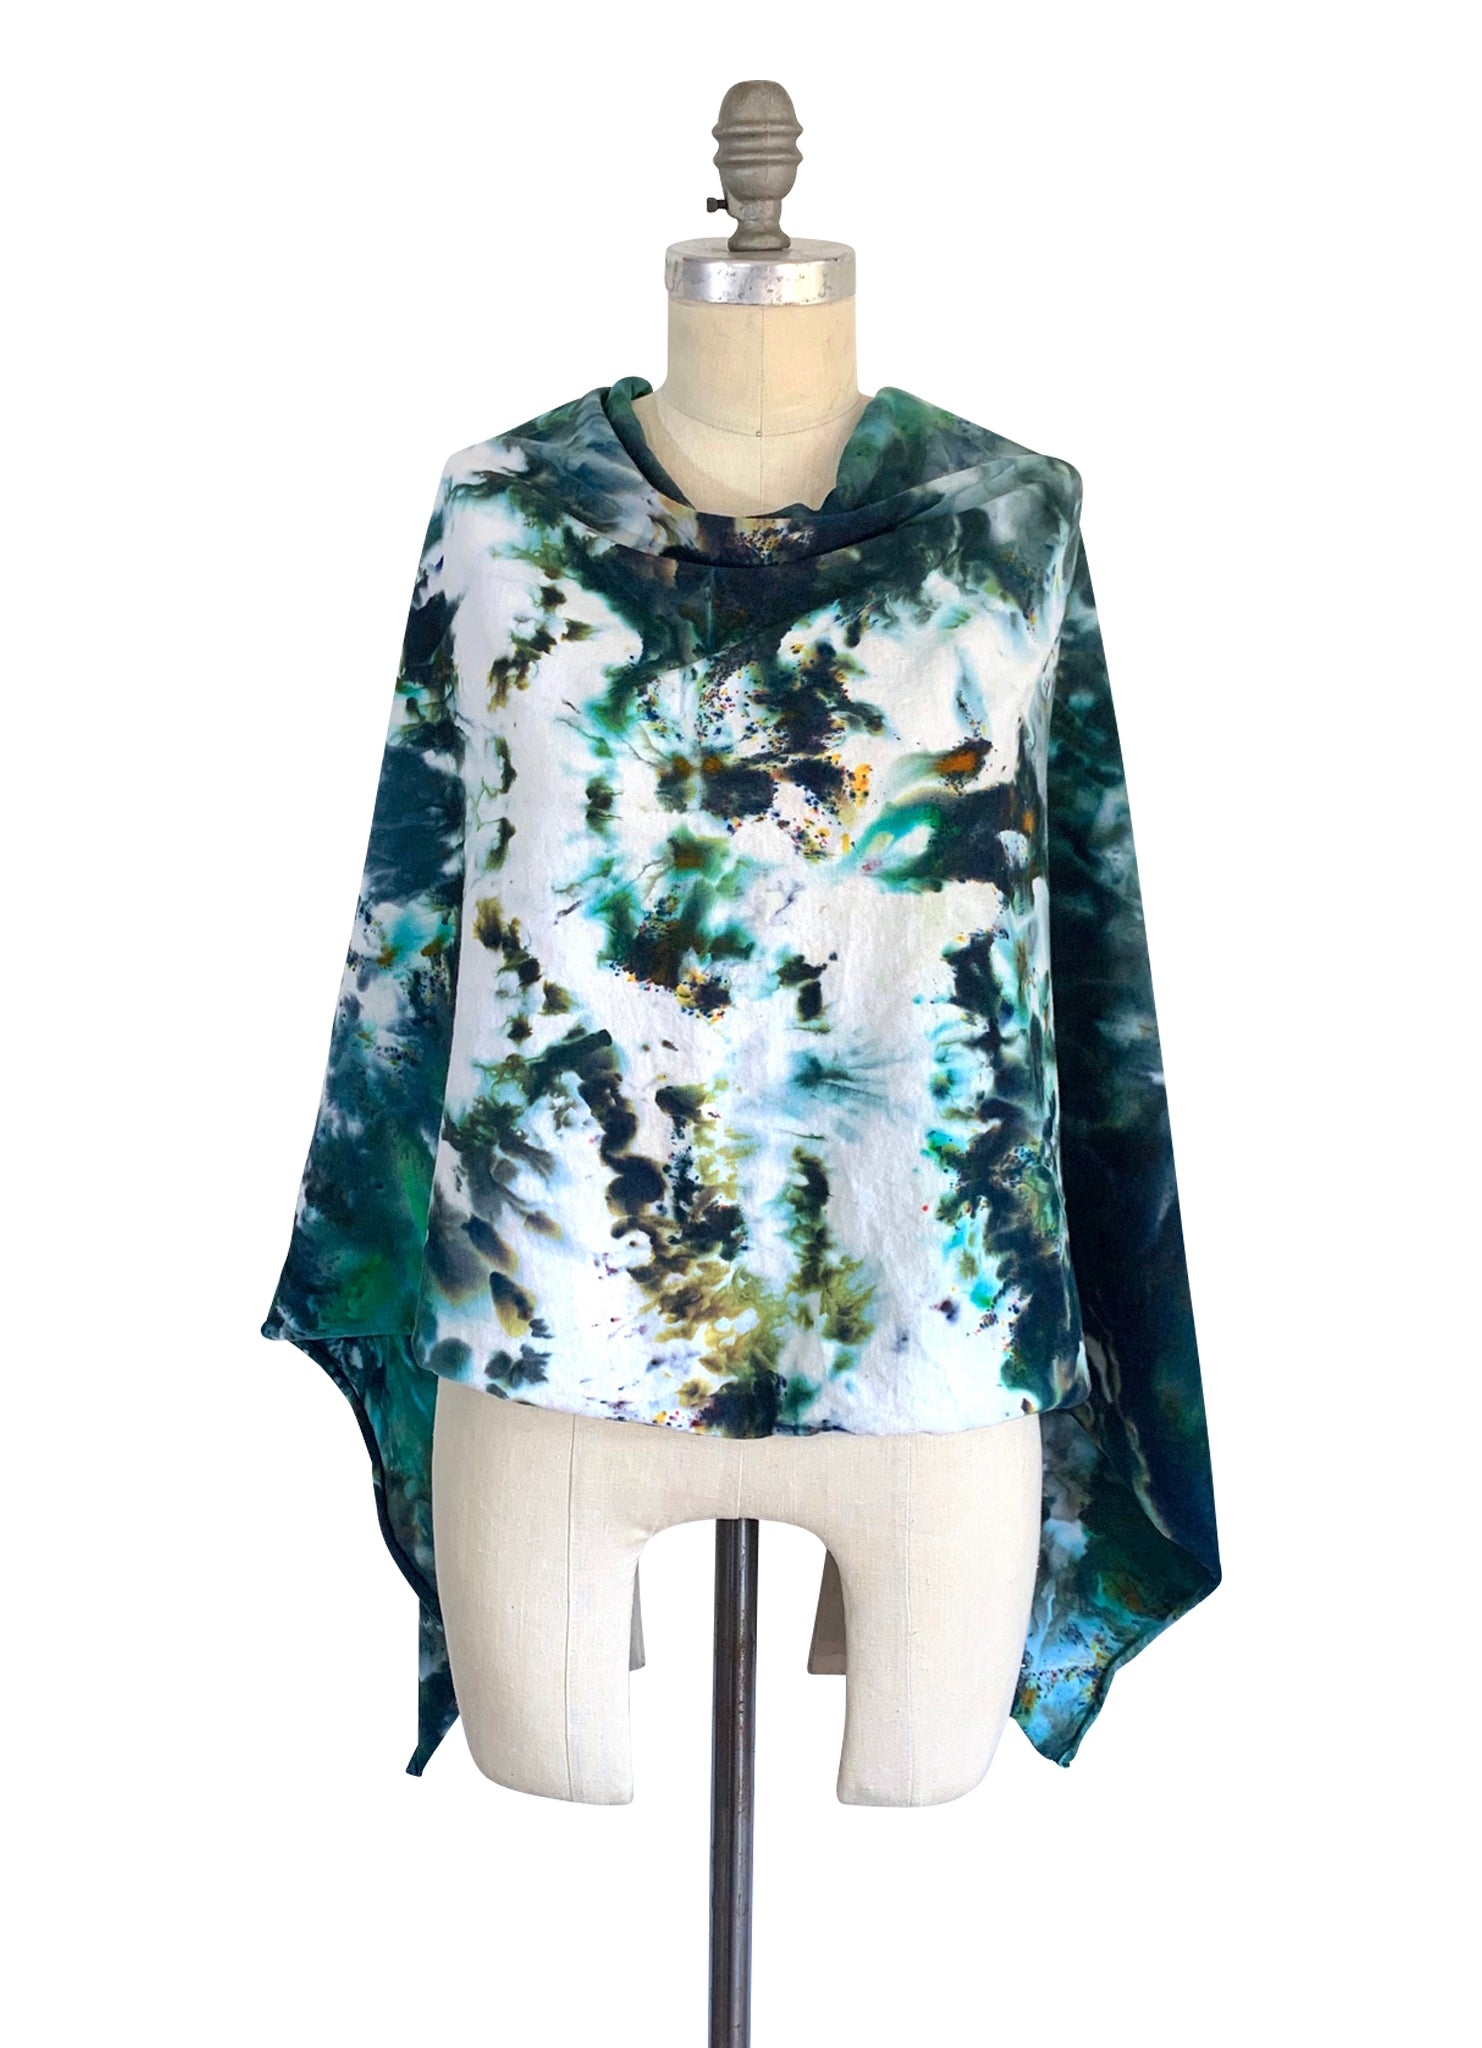 5 in 1 Poncho in Woodland Camo - Top - Dyetology